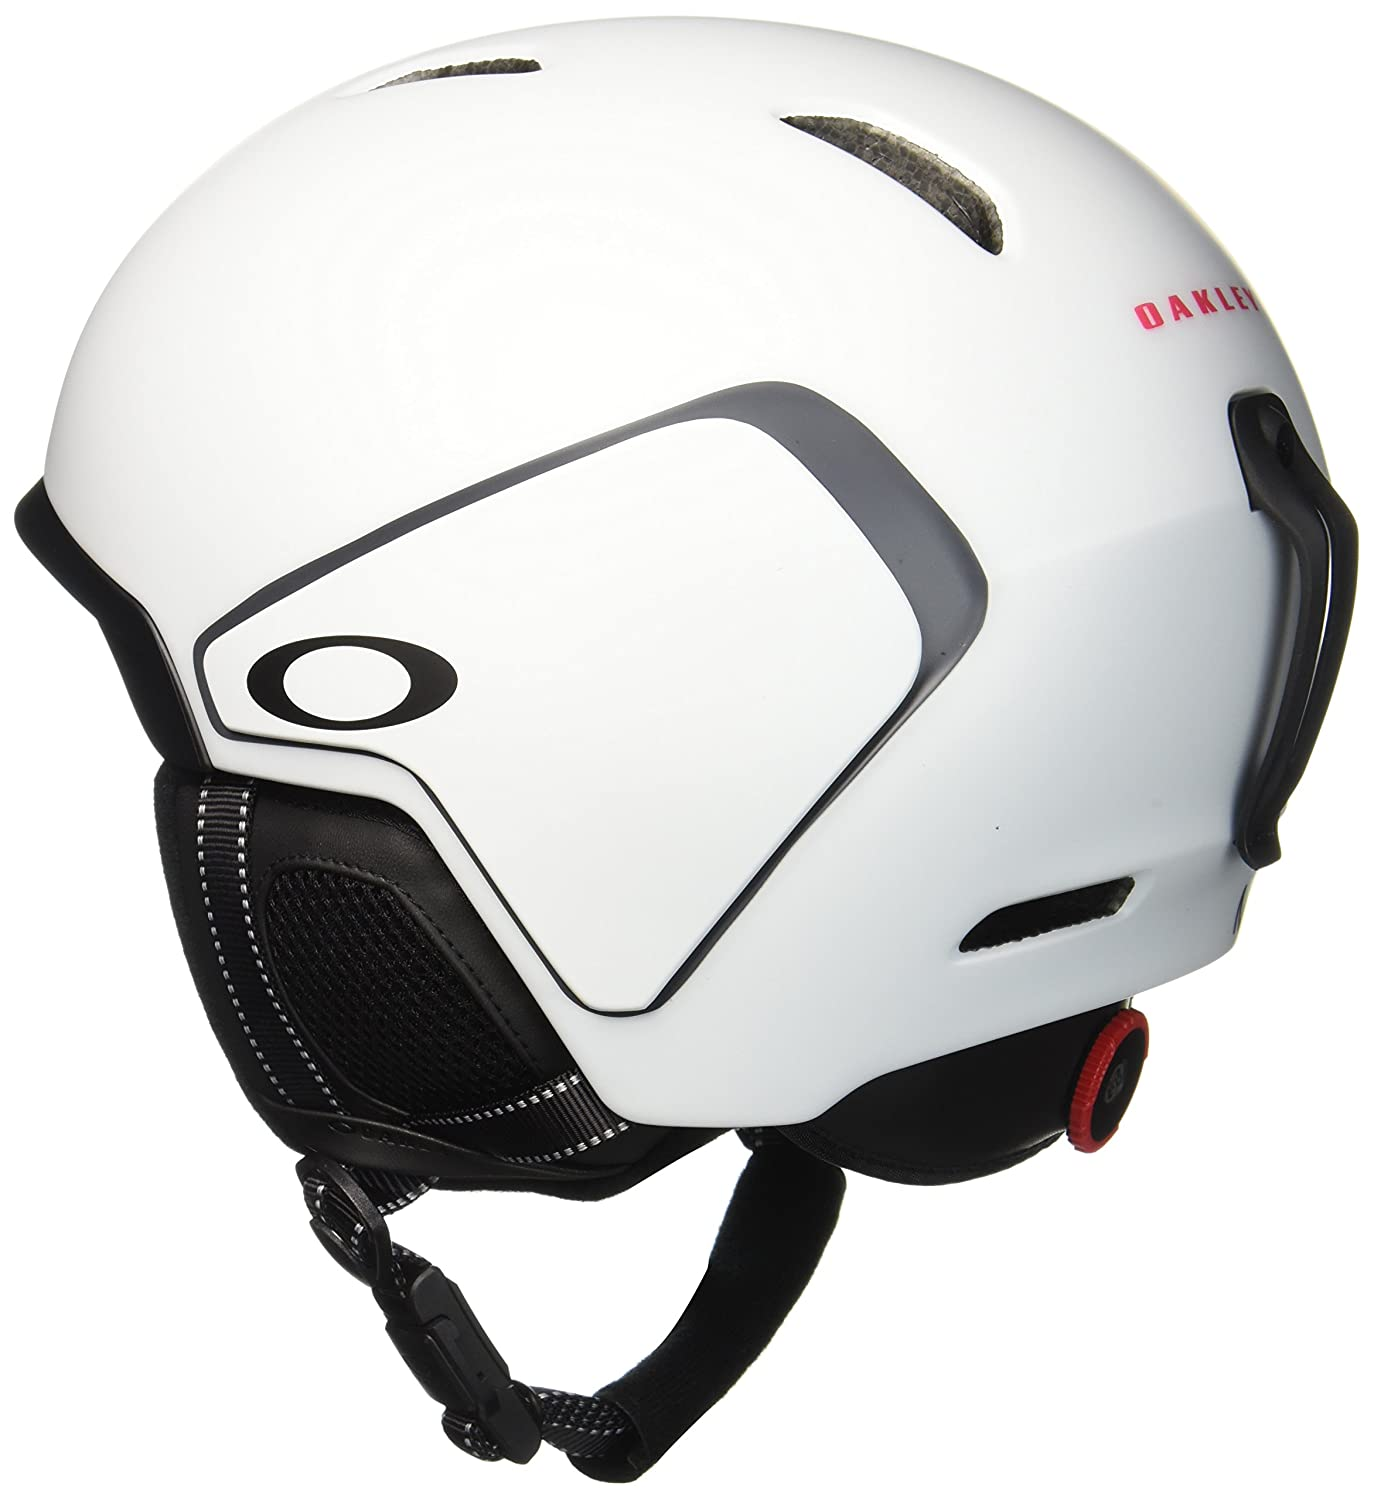 74ee62ef06 Amazon.com  Oakley Mod 3 Adult Ski Snowboarding Helmet - Matte White Large   Sports   Outdoors